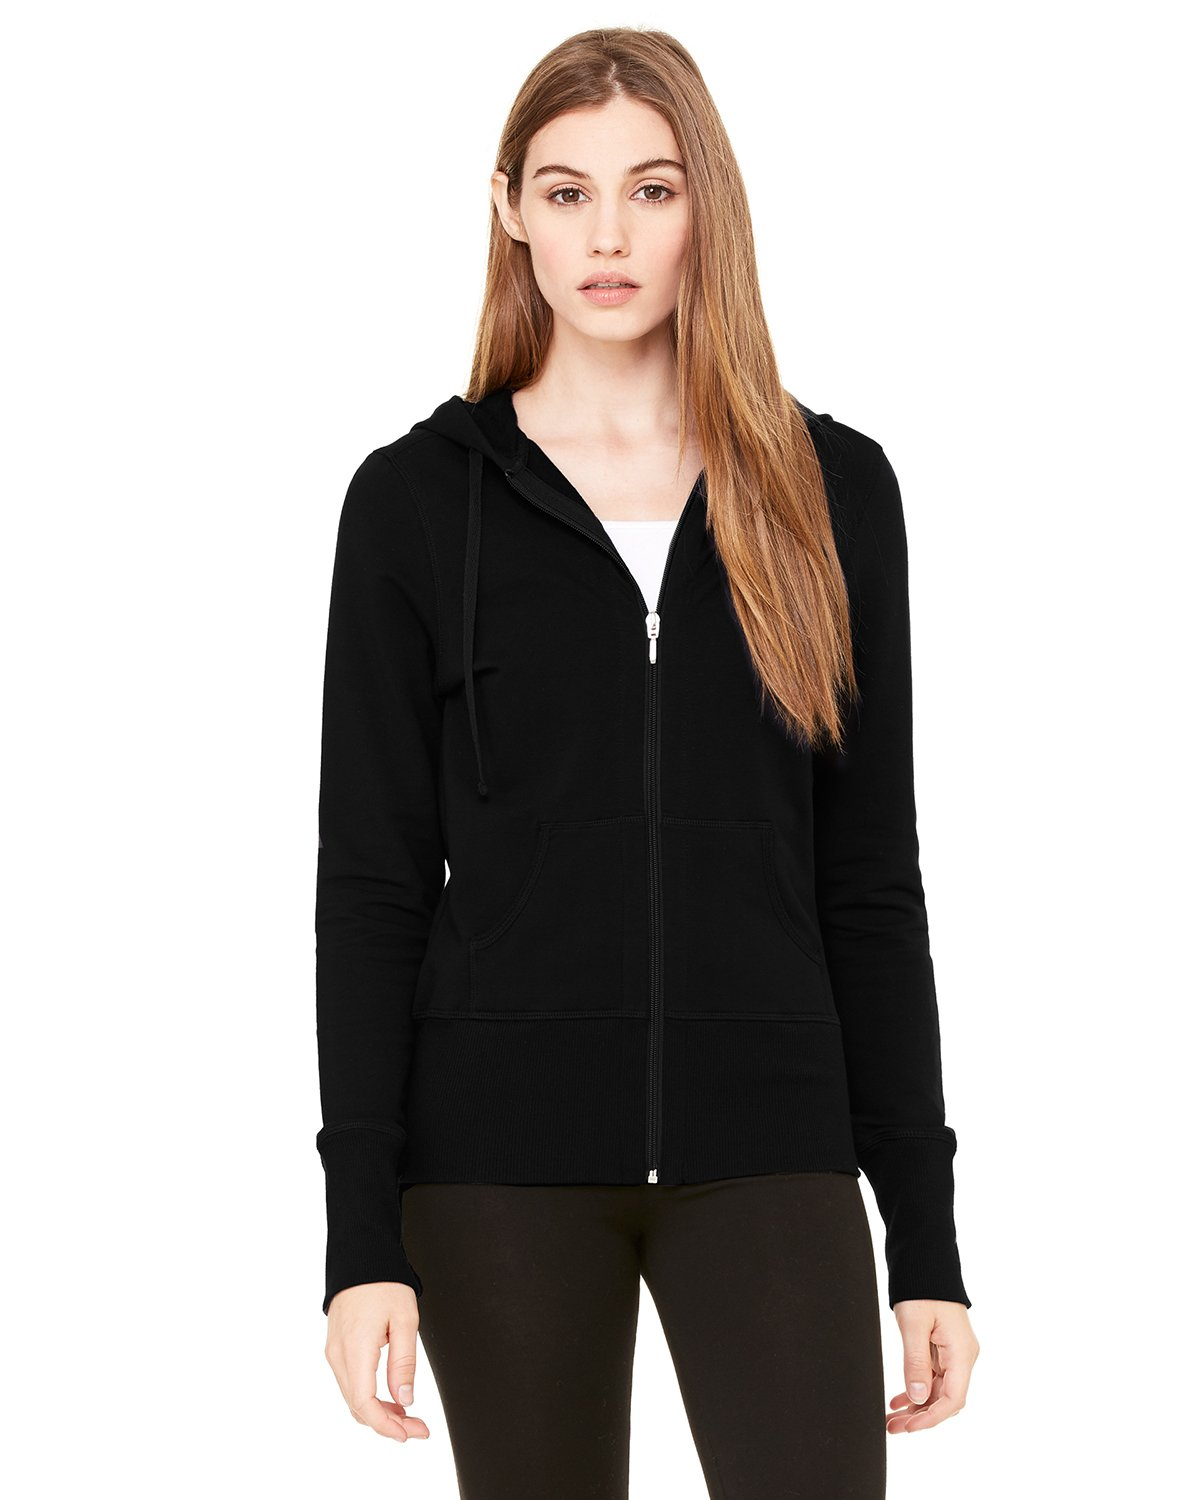 Bella + Canvas - B7207 - Ladies' Stretch French Terry Lounge Jacket